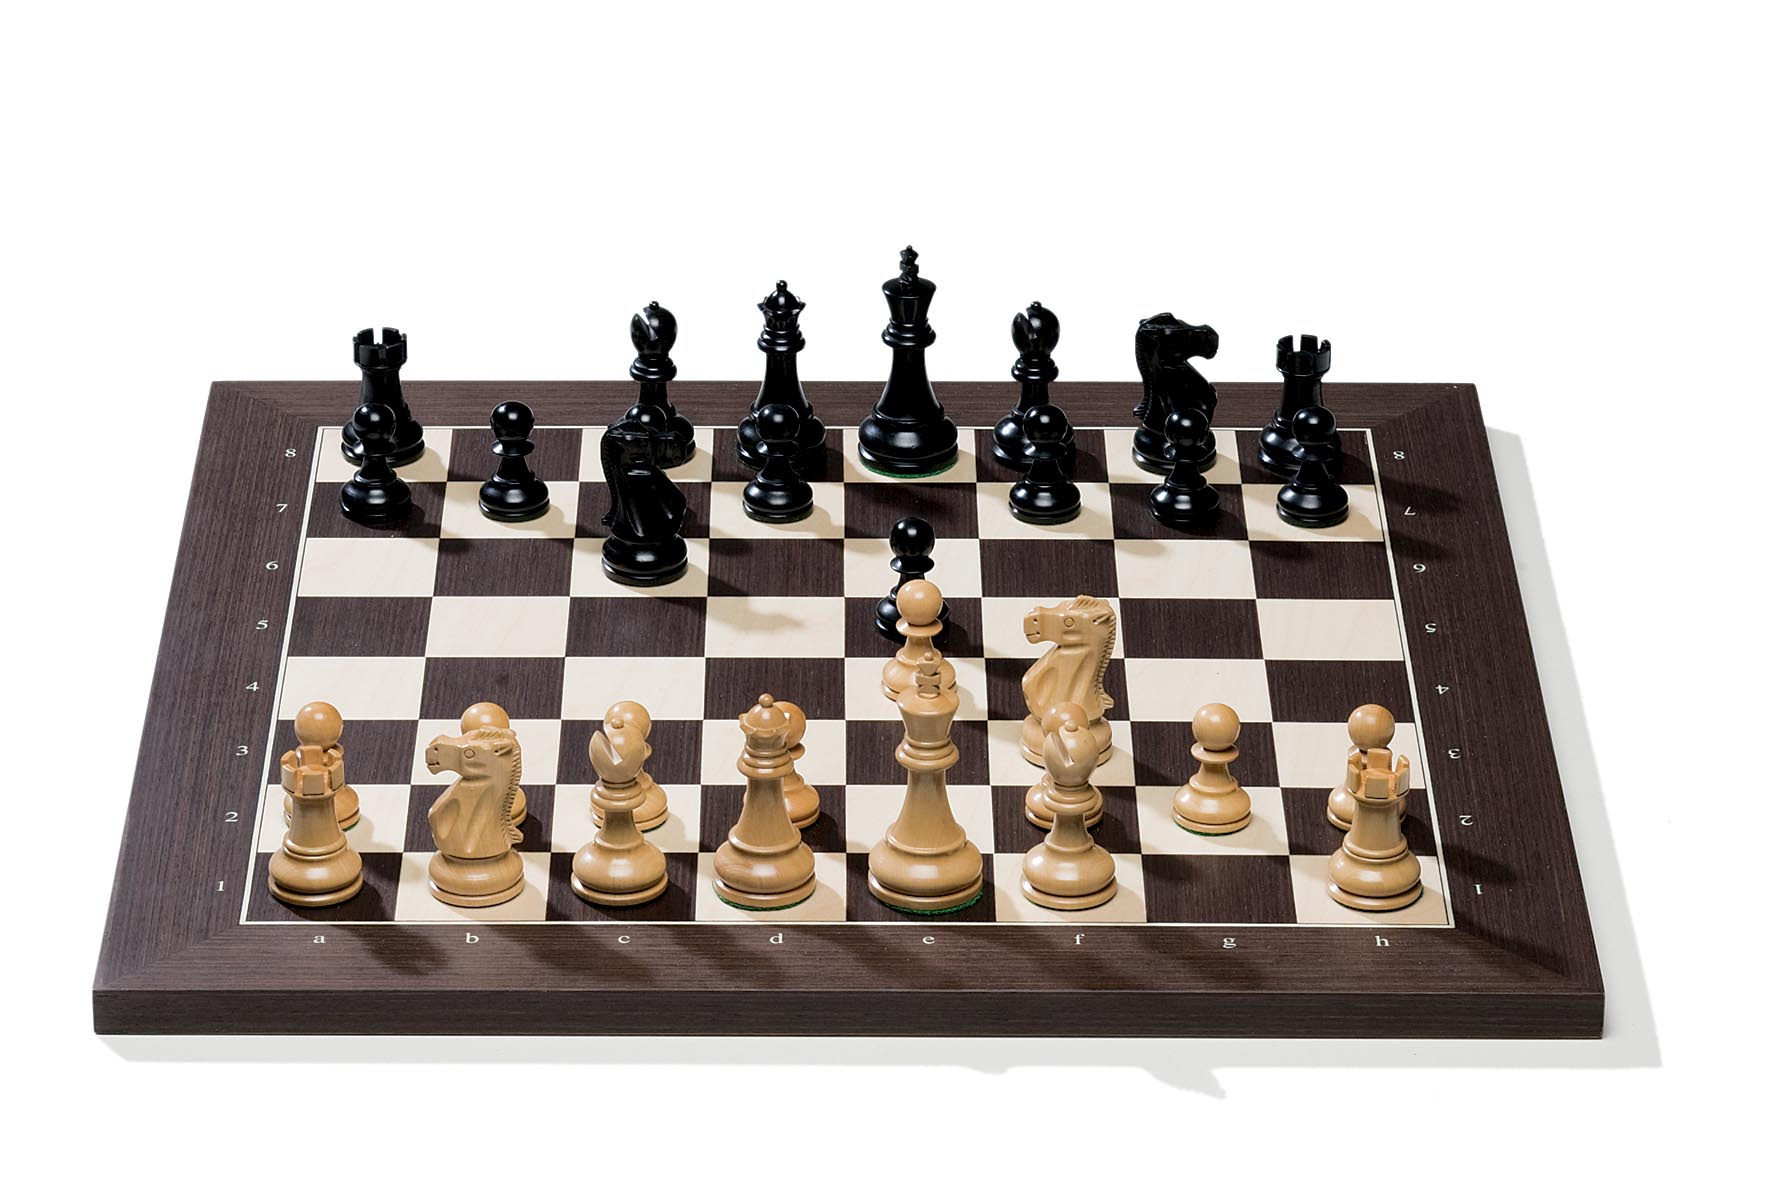 Chess Boards Cheap Chess Shop Tournament Chess Boards With Pieces Dgt Buy